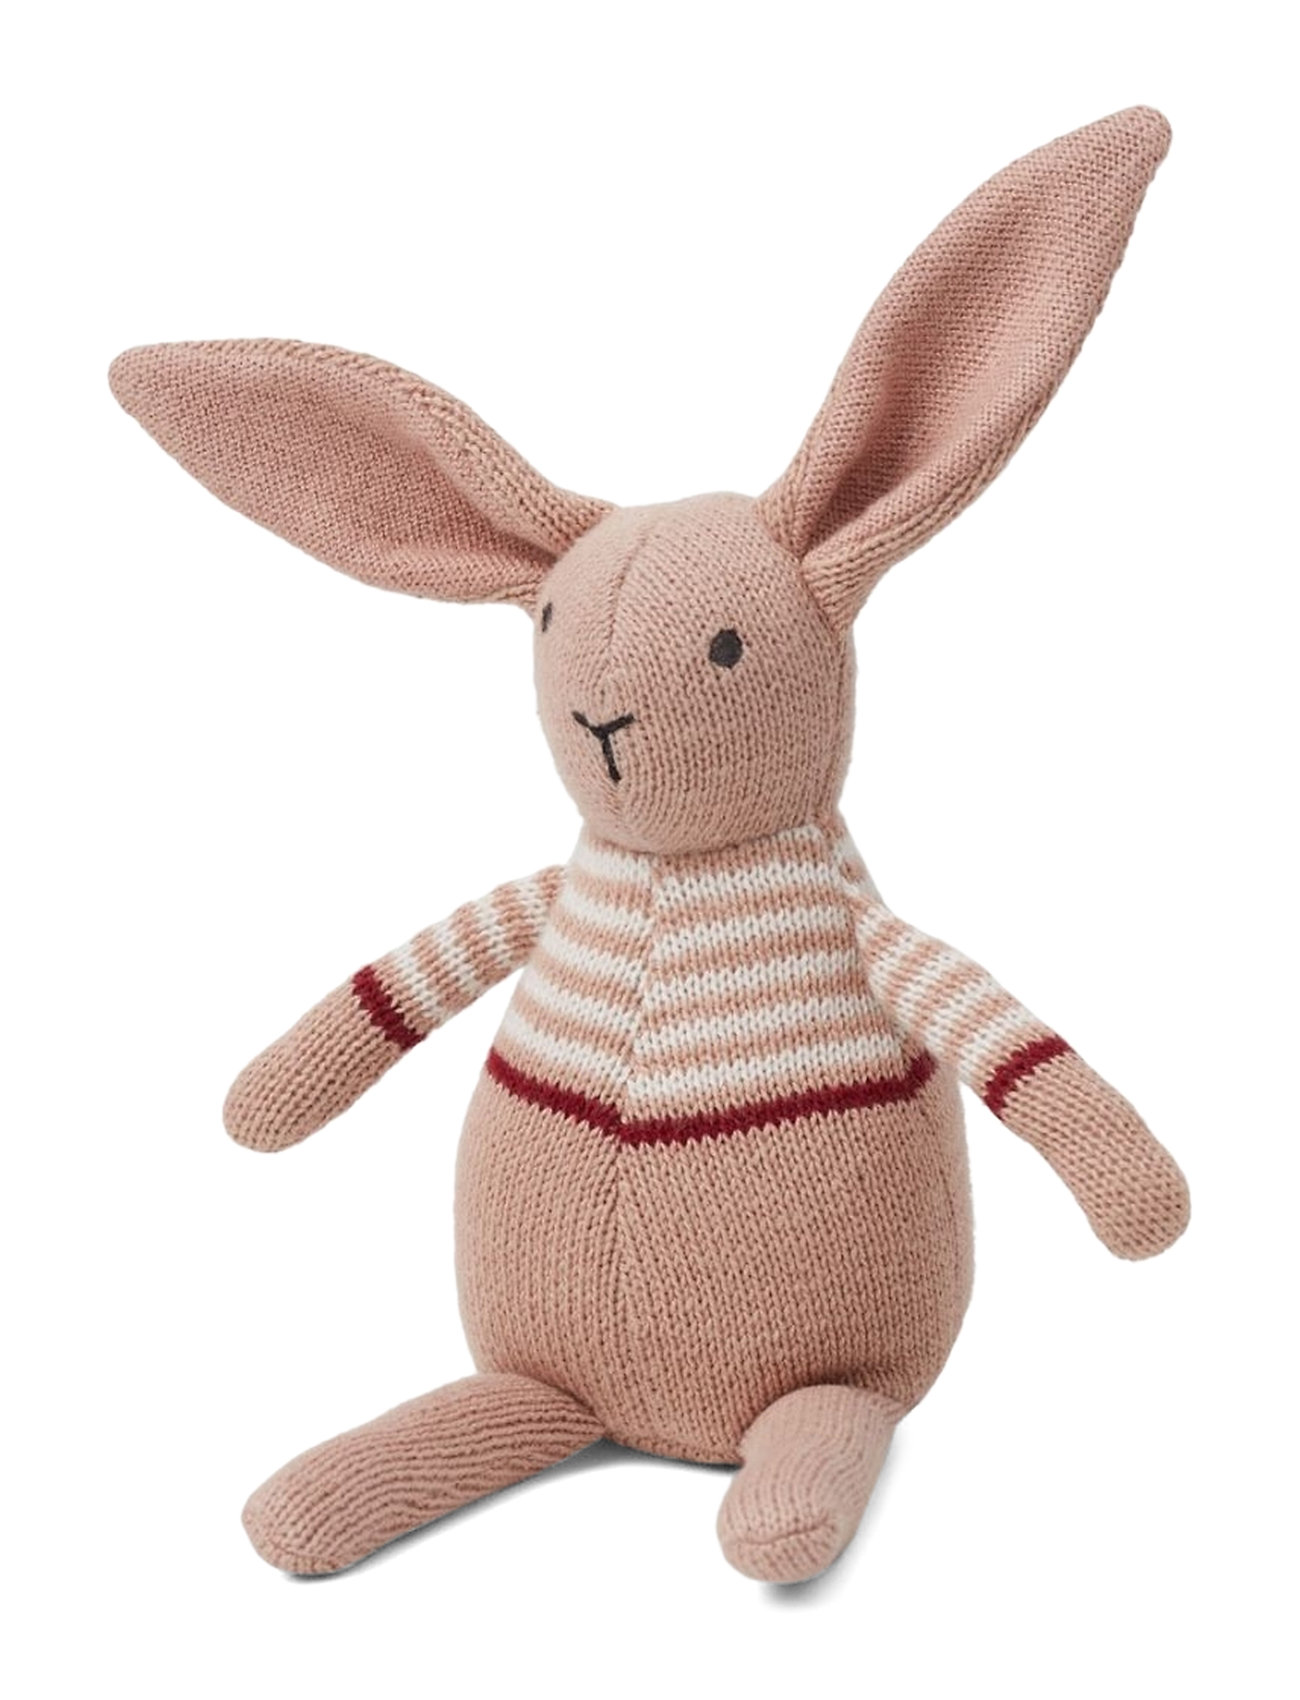 Liewood Vigga knit mini teddy - RABBIT ROSE